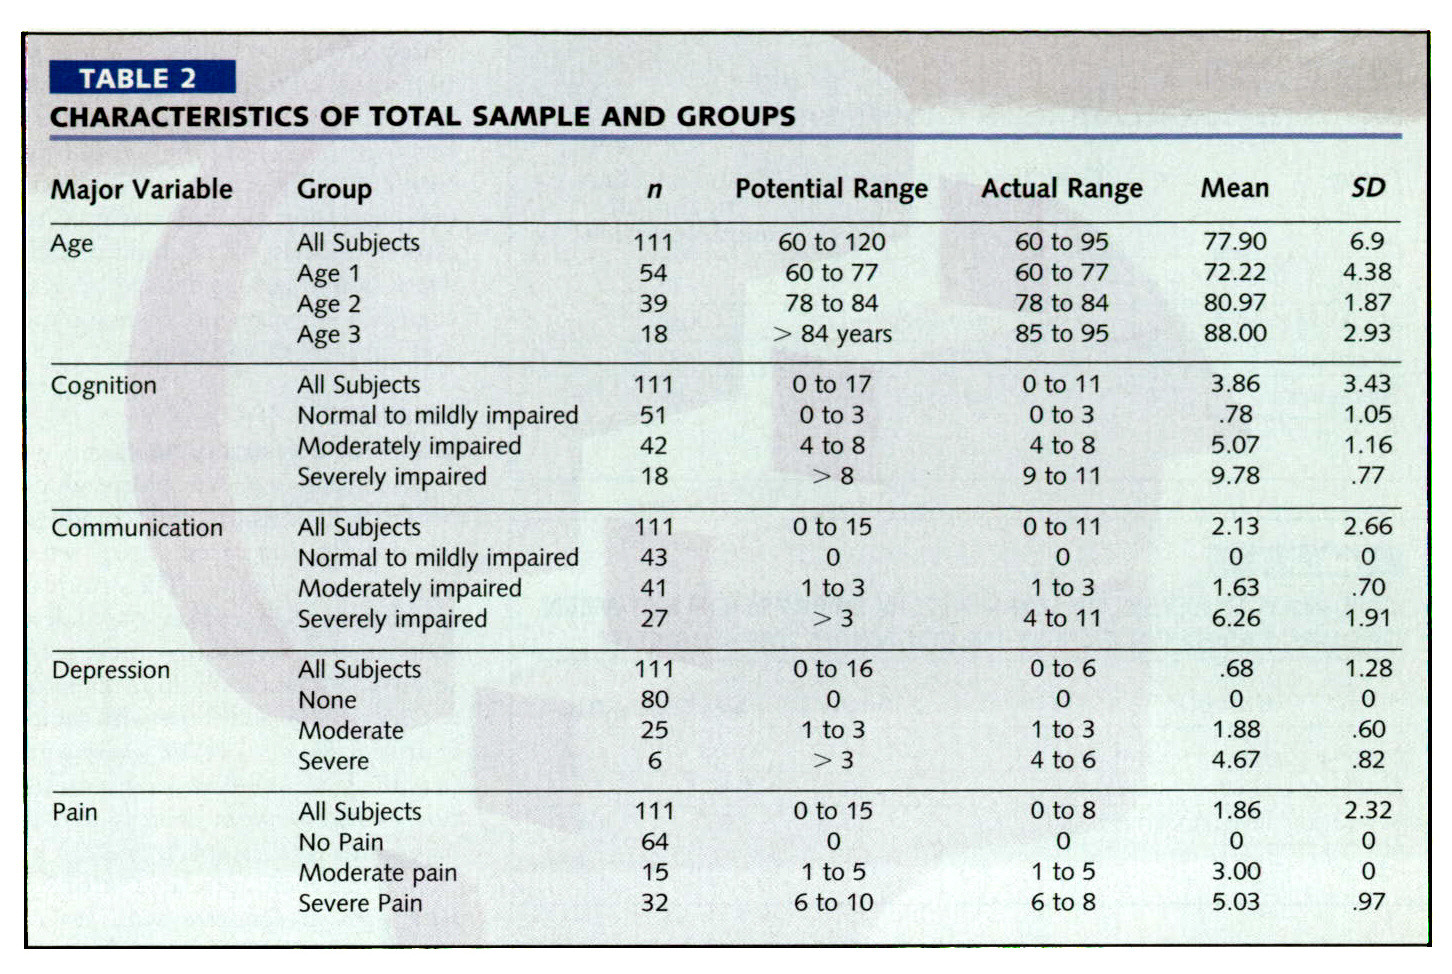 TABLE 2CHARACTERISTICS OF TOTAL SAMPLE AND GROUPS